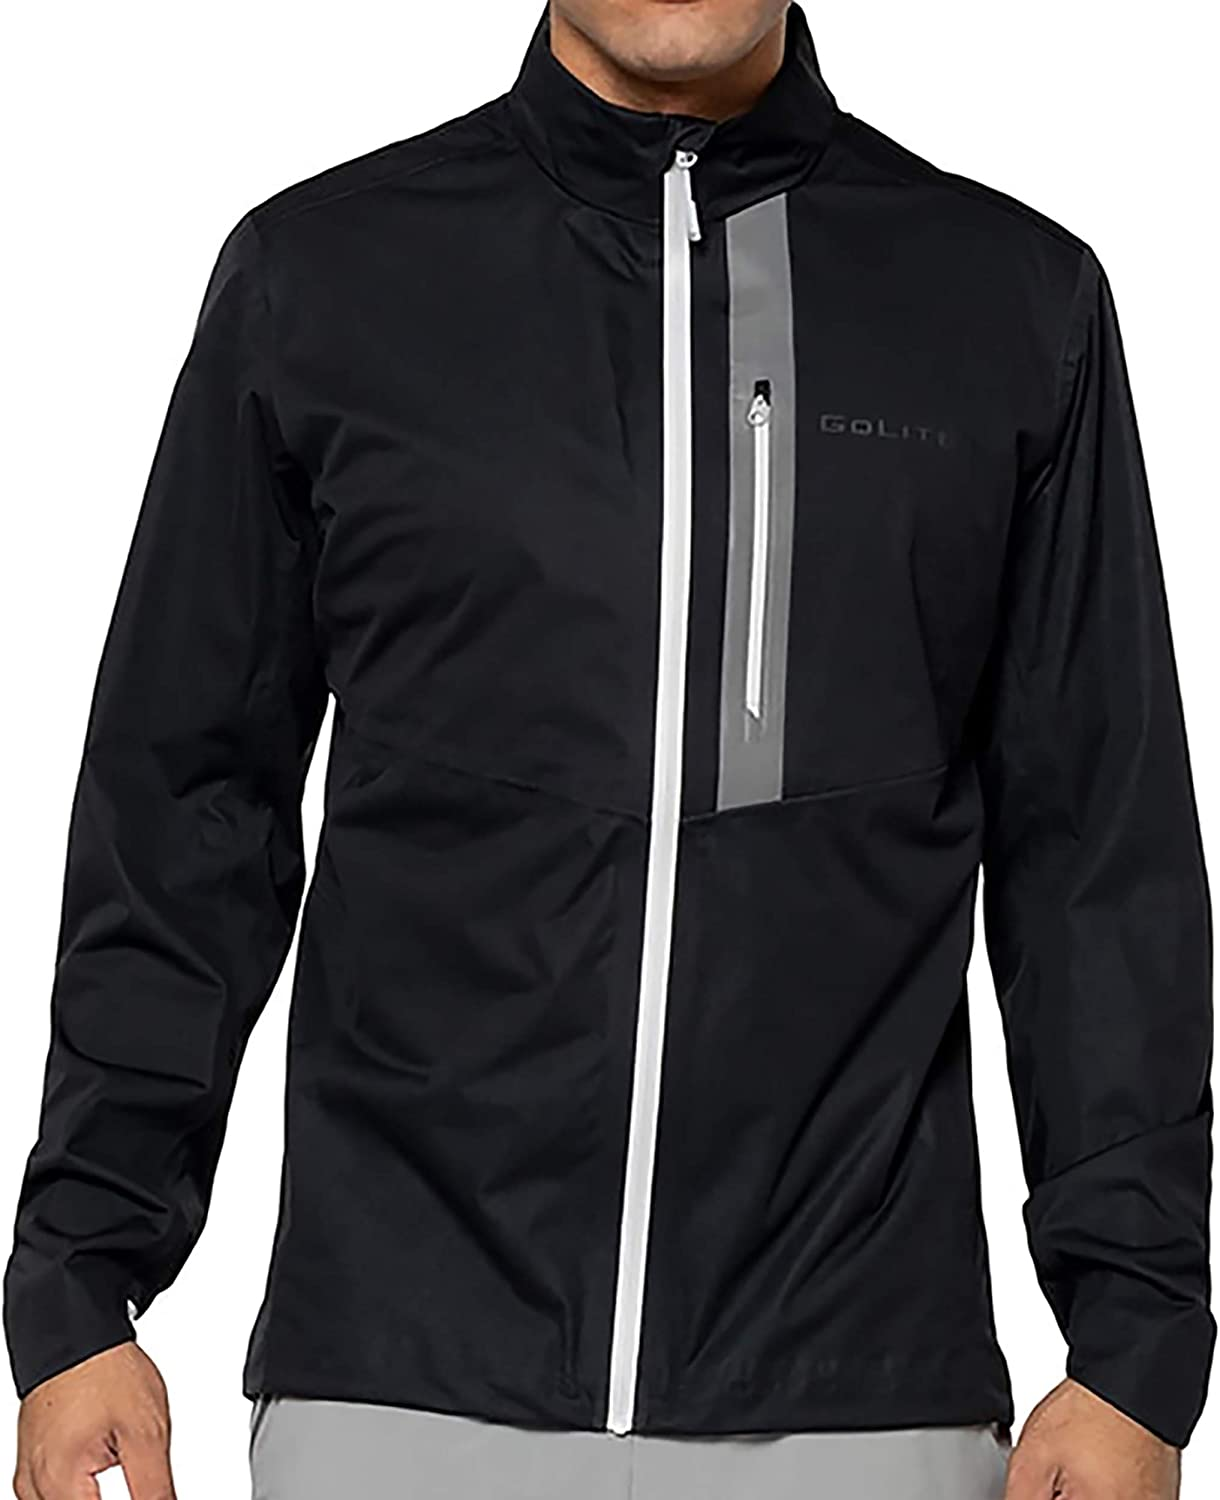 GoLite Men's Max 43% OFF Ready Set Go Shell Jacket Directly managed store